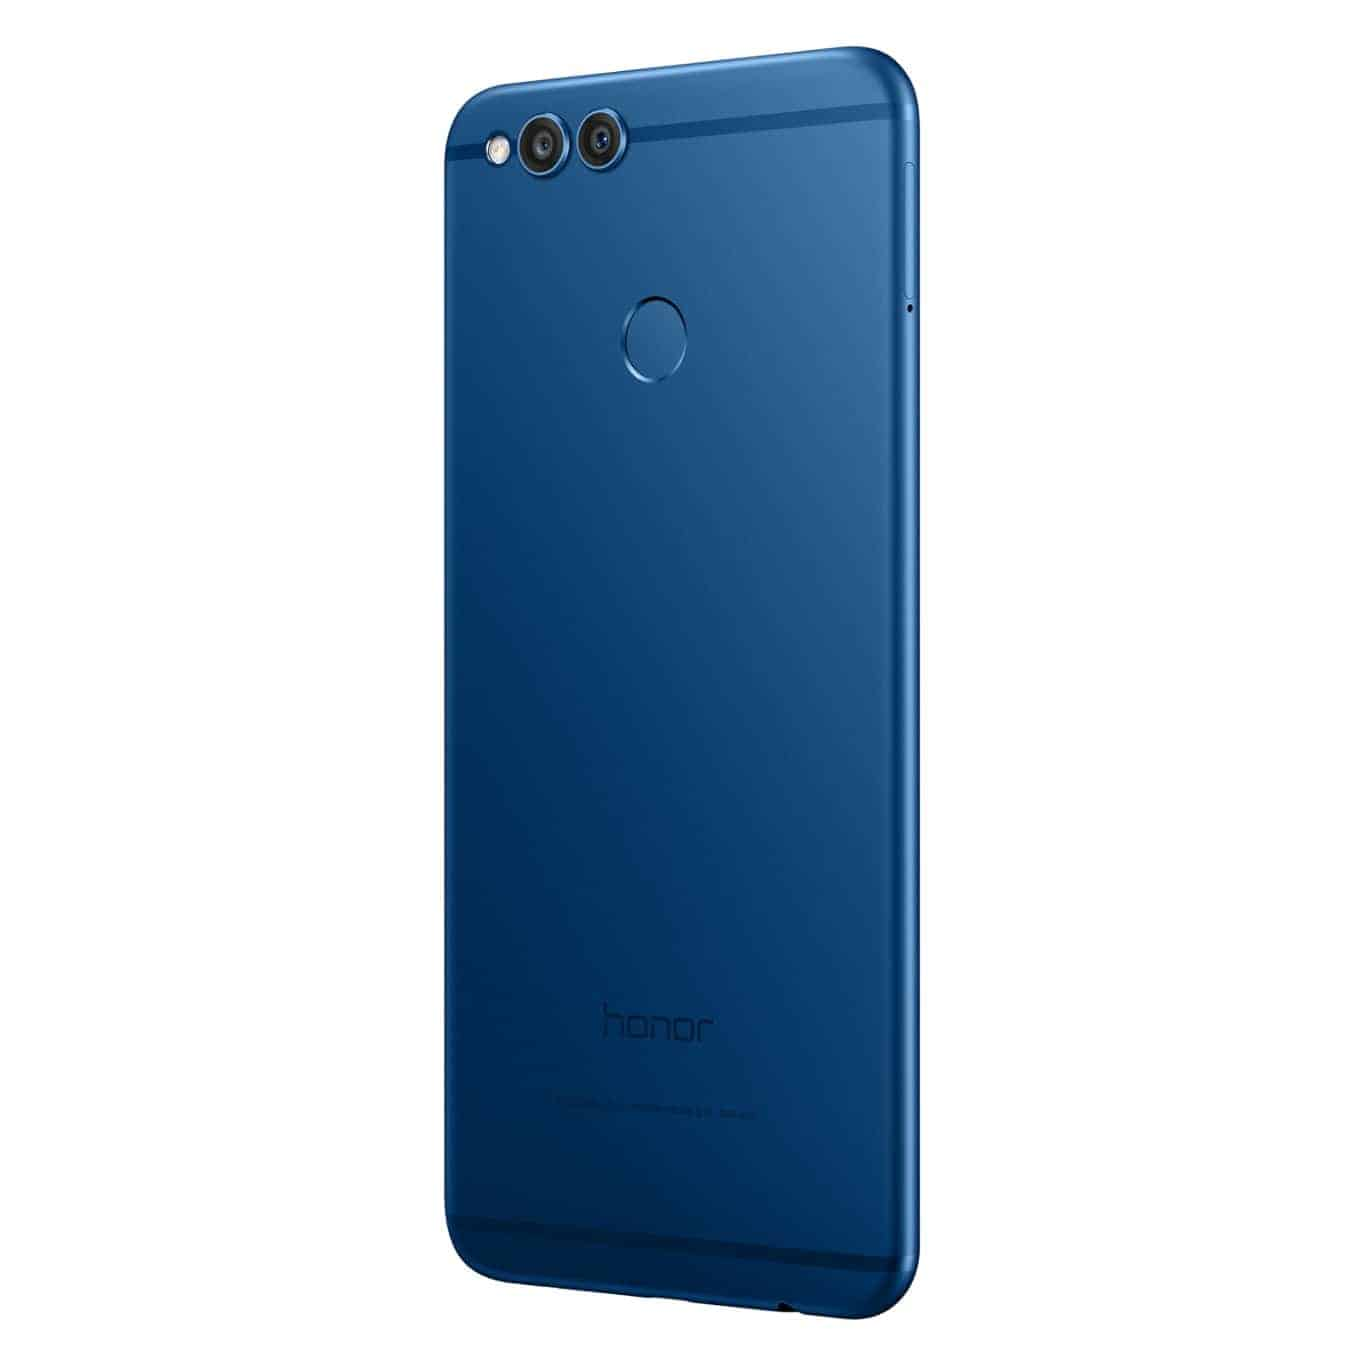 Honor 7X official image 20